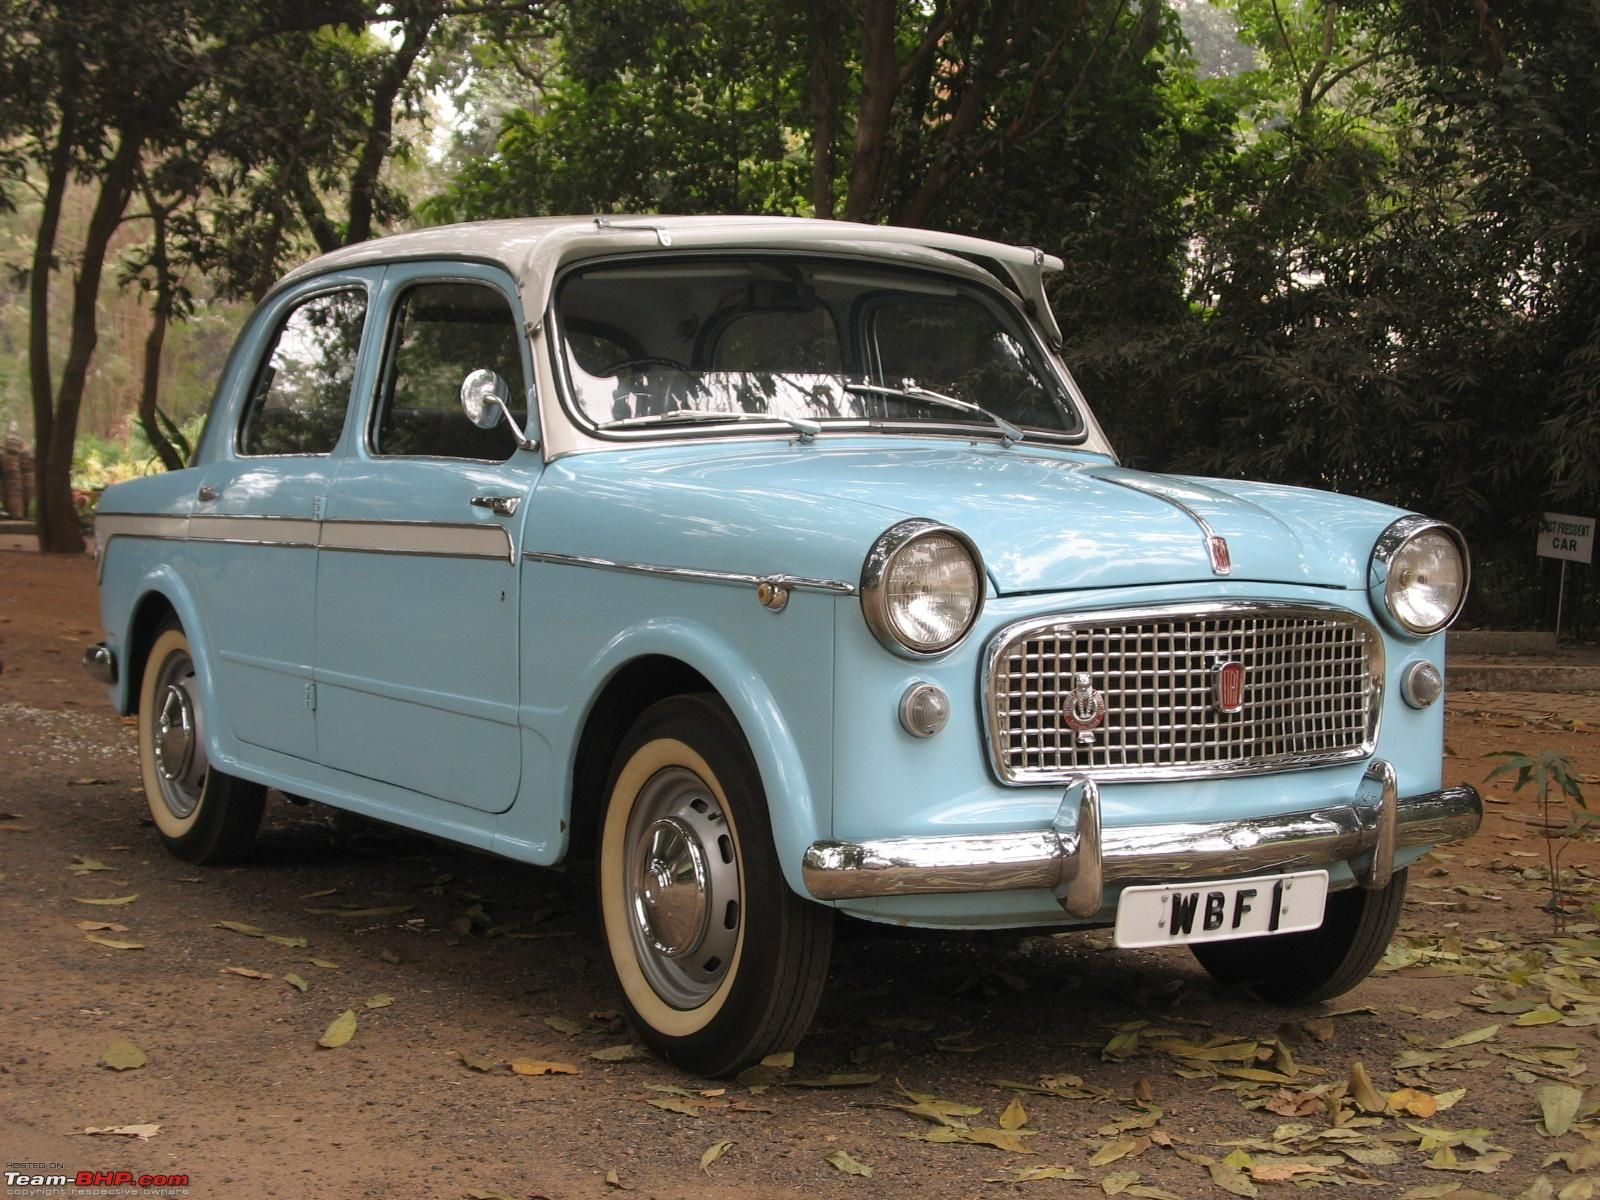 An Affordable Vintage Car?-img_5808.jpg | Vintage and Classic Cars ...